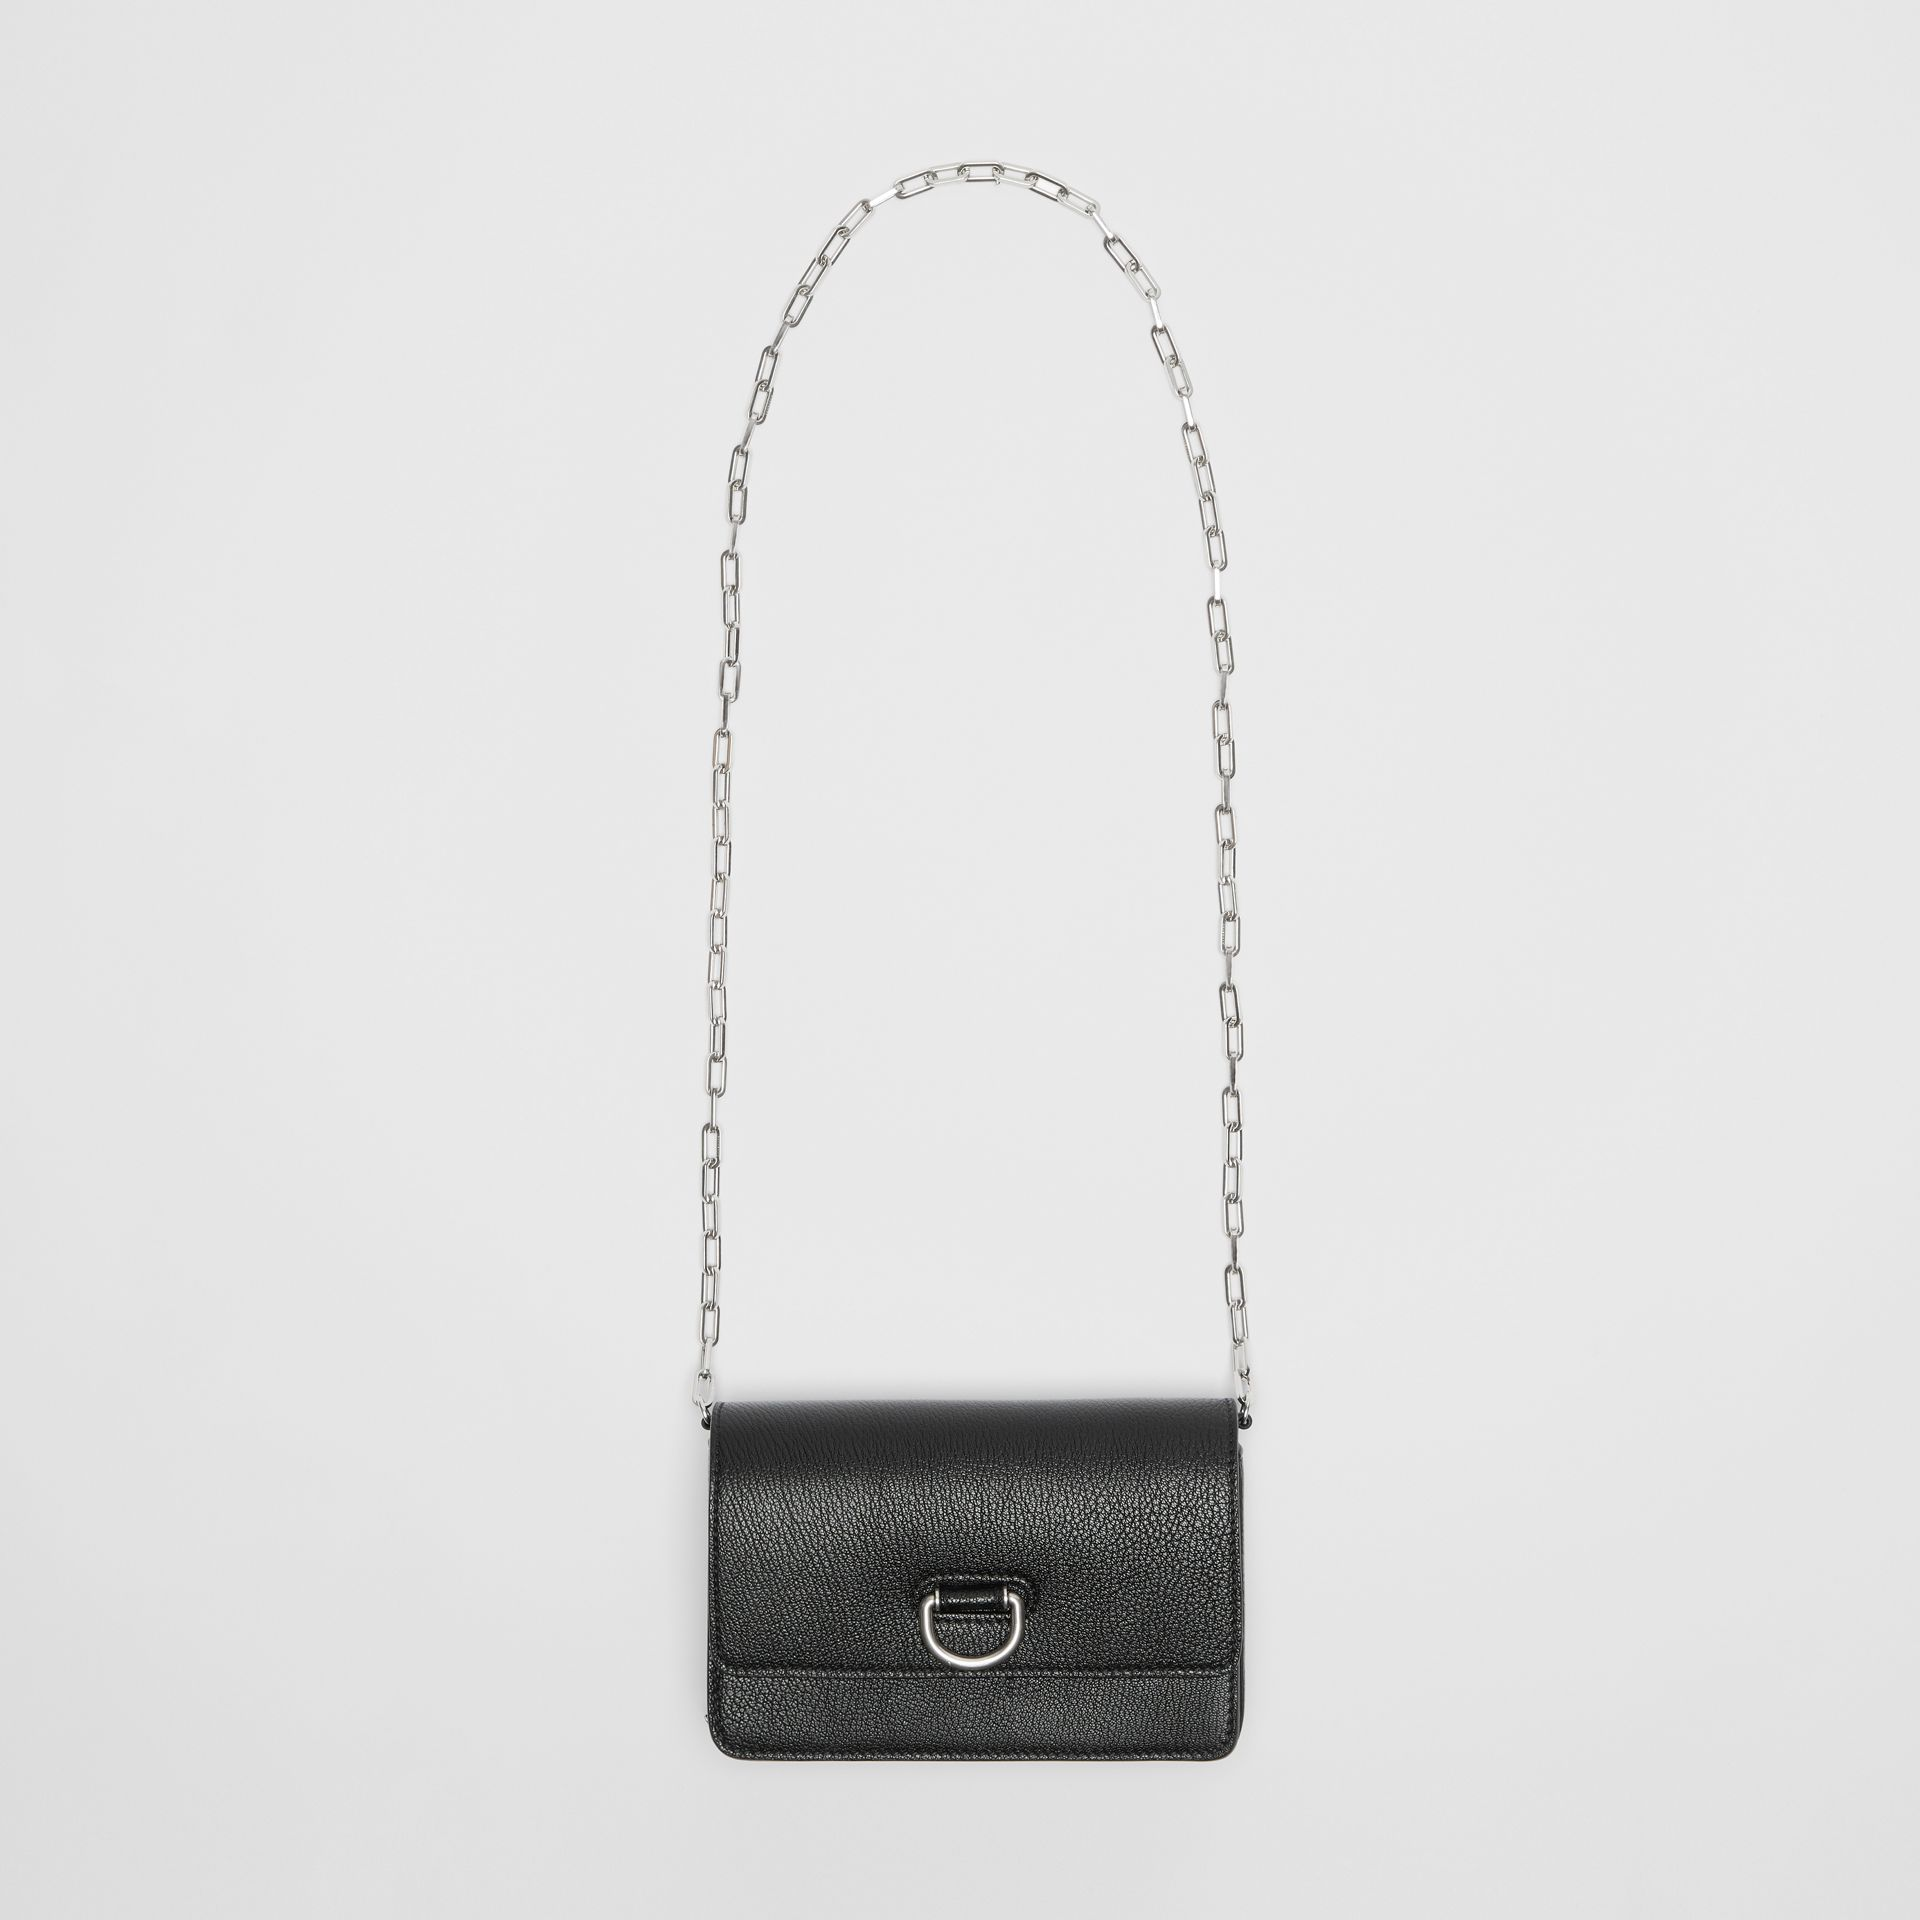 Borsa The D-ring mini in pelle (Nero) - Donna | Burberry - immagine della galleria 4